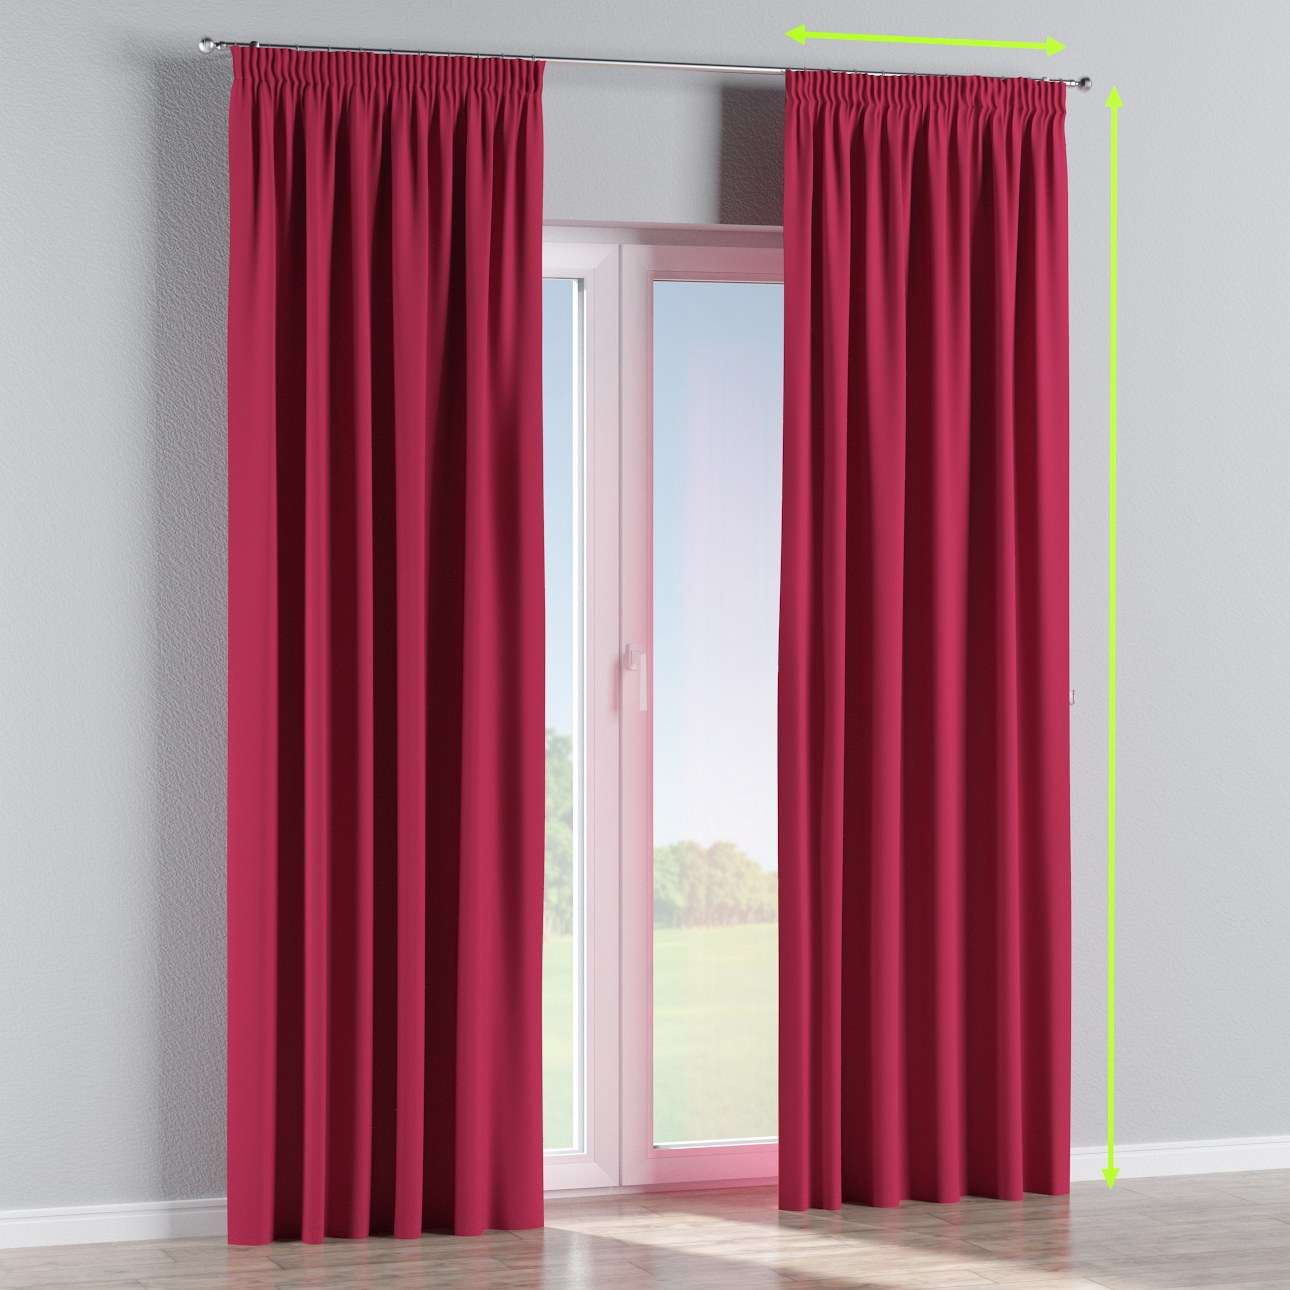 Pencil pleat curtains in collection Blackout, fabric: 269-51